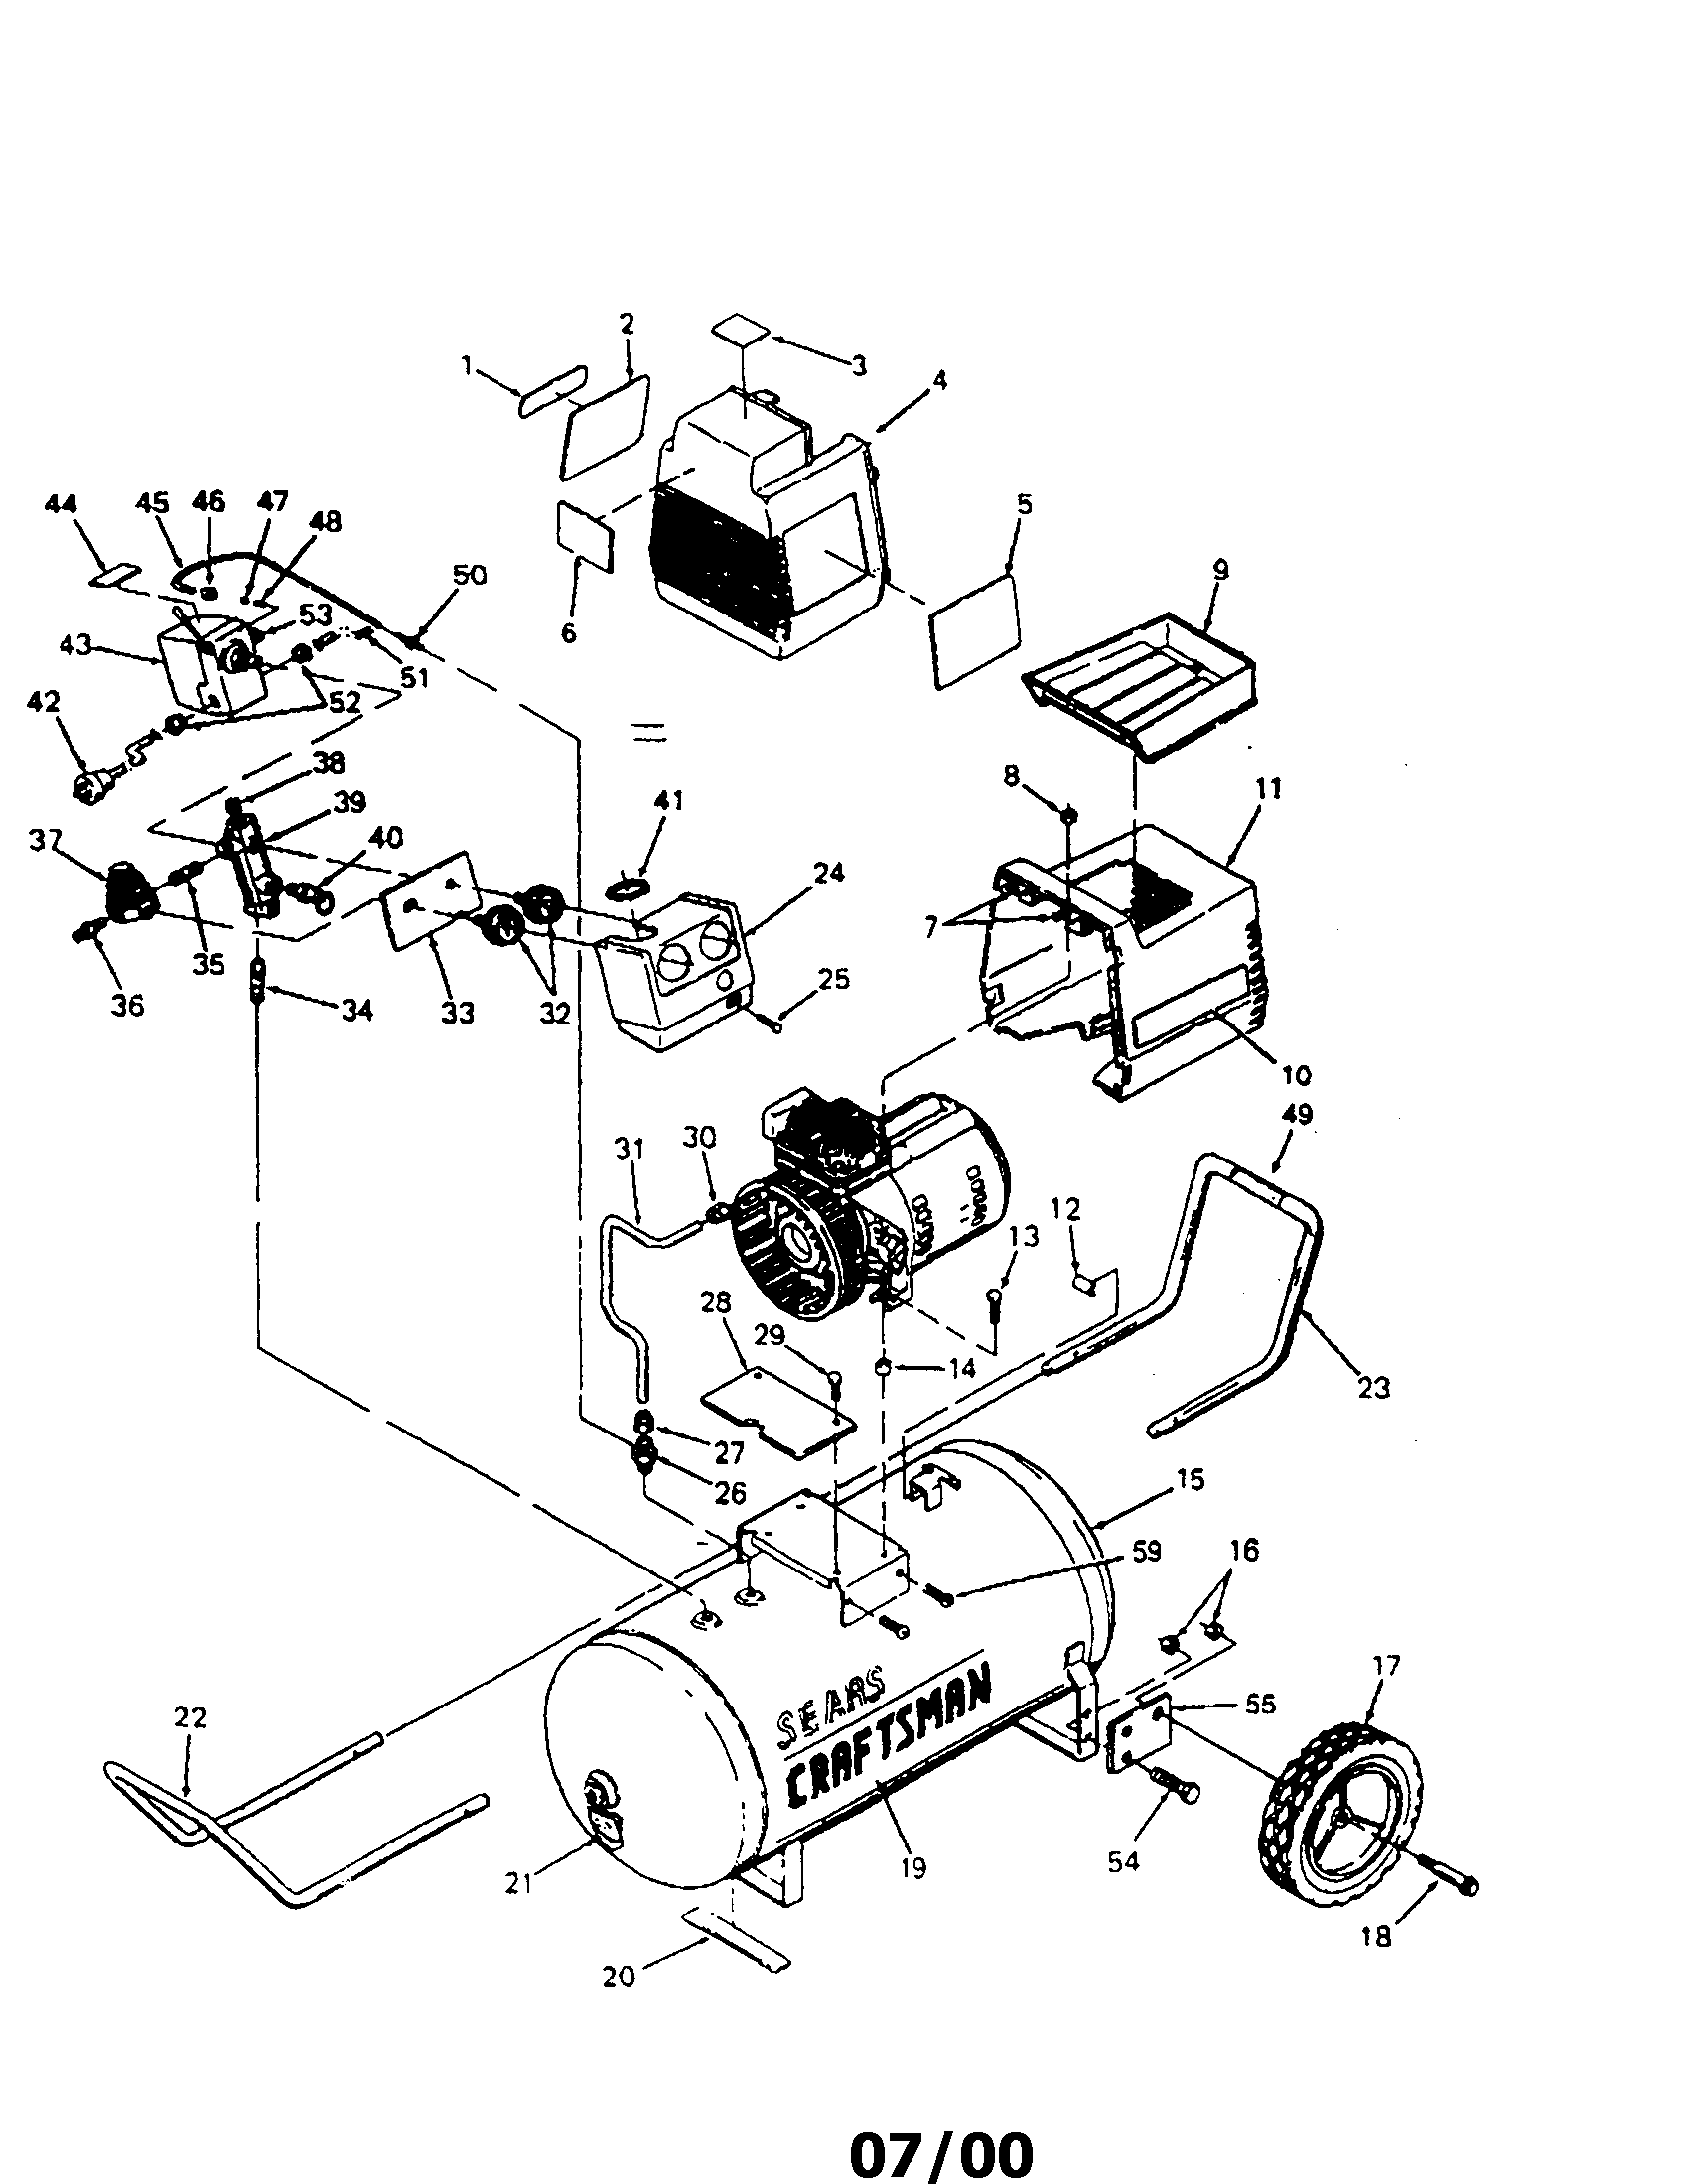 919.153231_craftsman_compressor_parts 919 153231 sears craftsman air compressor parts abac air compressor wiring diagram at virtualis.co